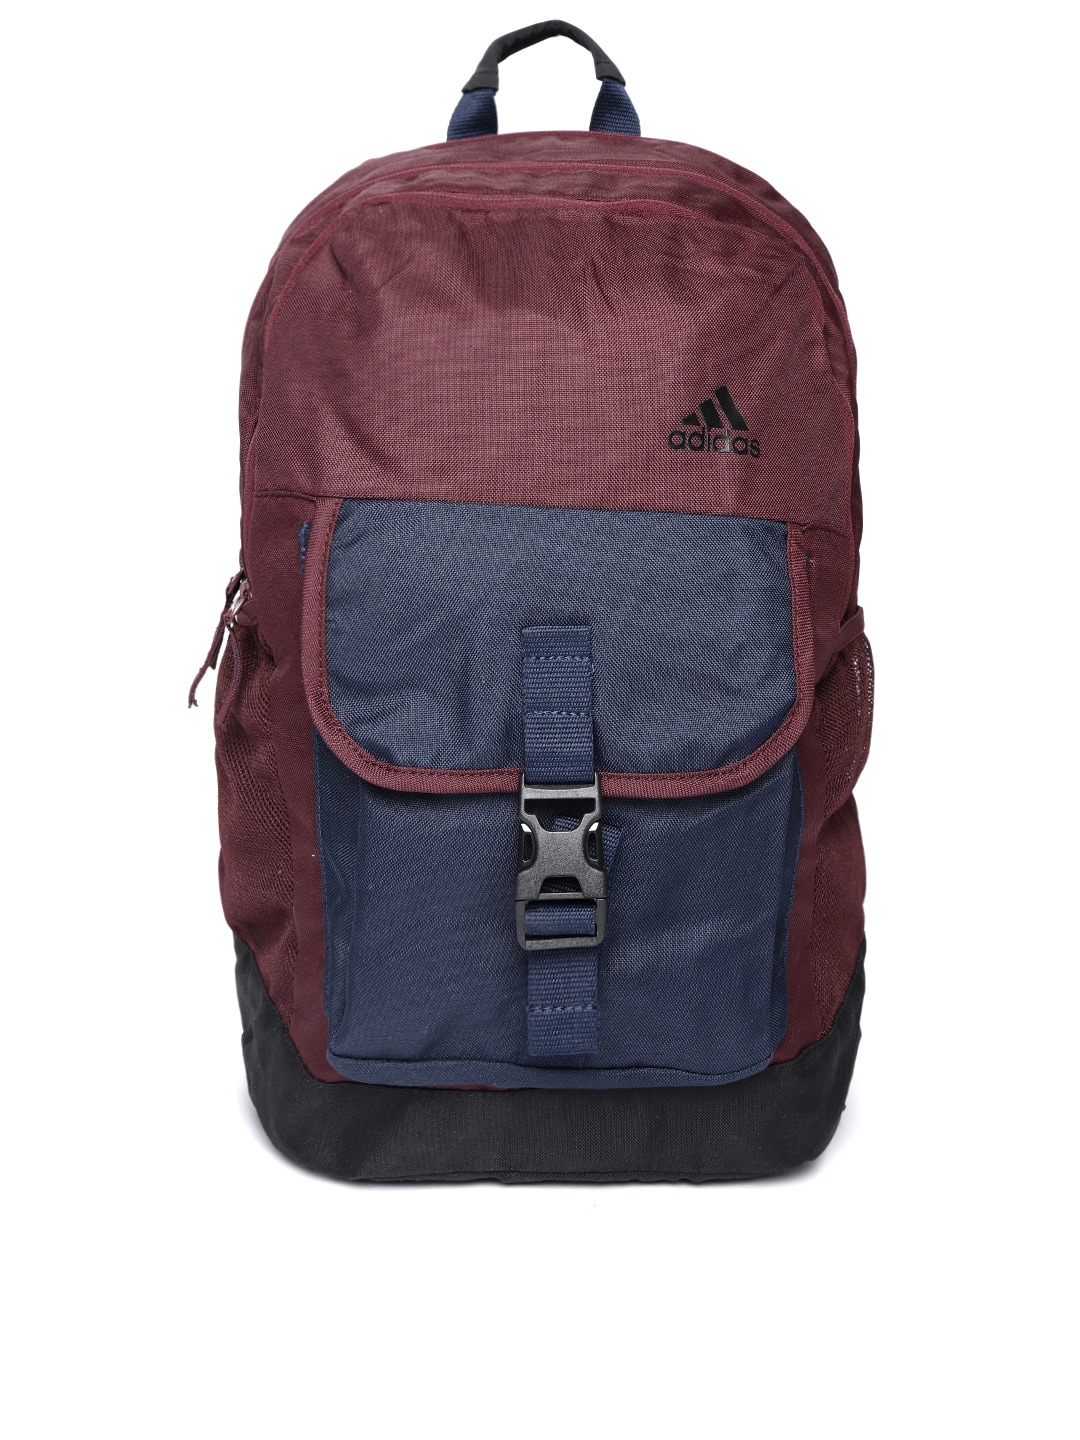 Adidas Laptop Backpacks - Buy Adidas Laptop Backpacks online in India 8760c647b6